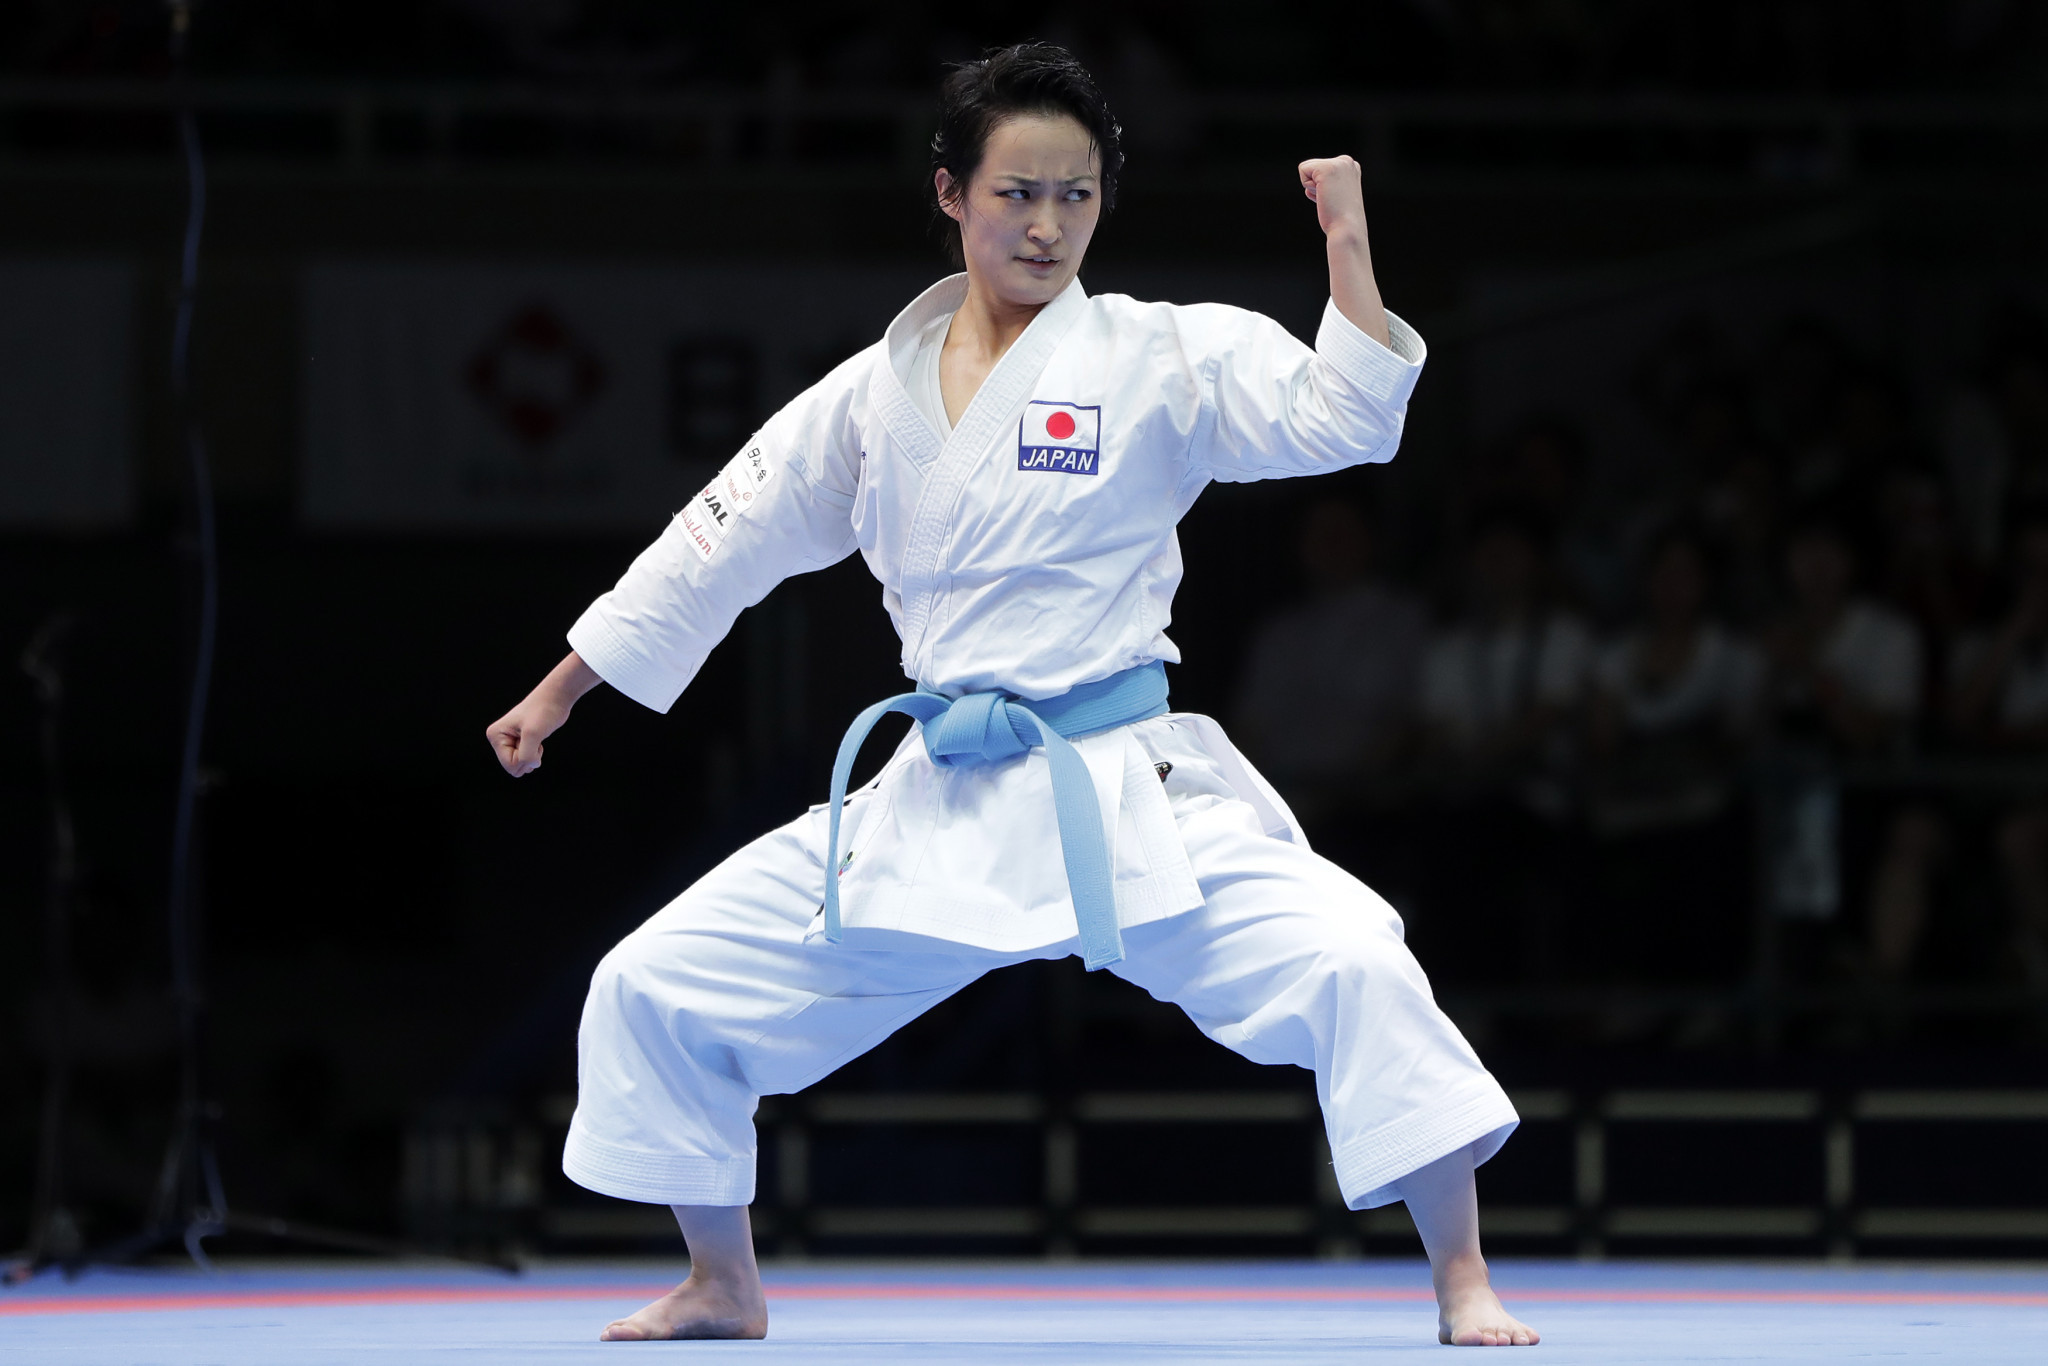 Last Septmeber, Japanese star Kiyou Shimizu claimed gold in the female kata at the Karate 1-Premier League in Tokyo ©Getty Images